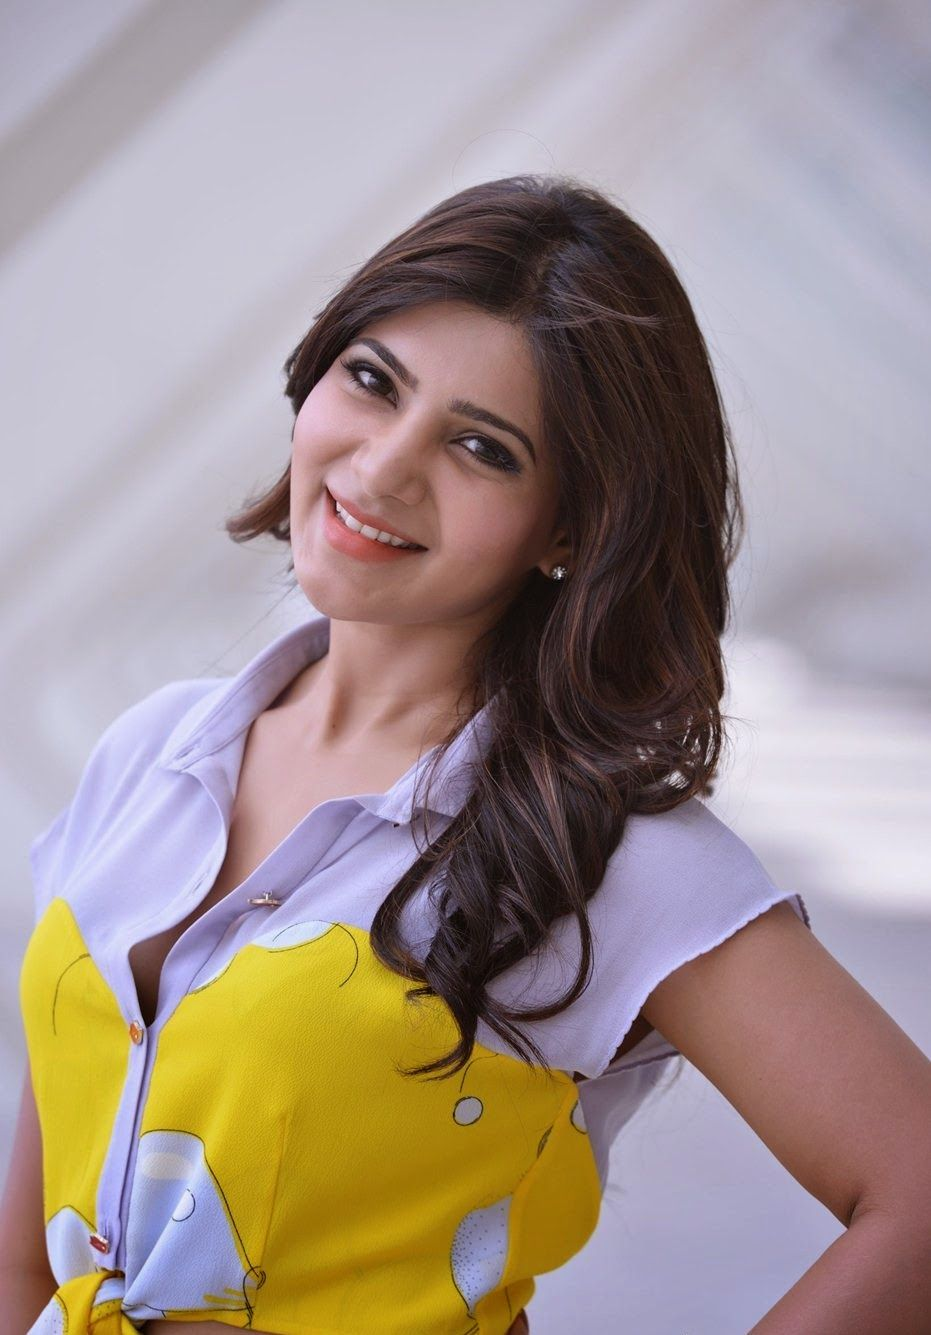 samantha hd photos,samantha hot photos, samantha ruthuprabhu